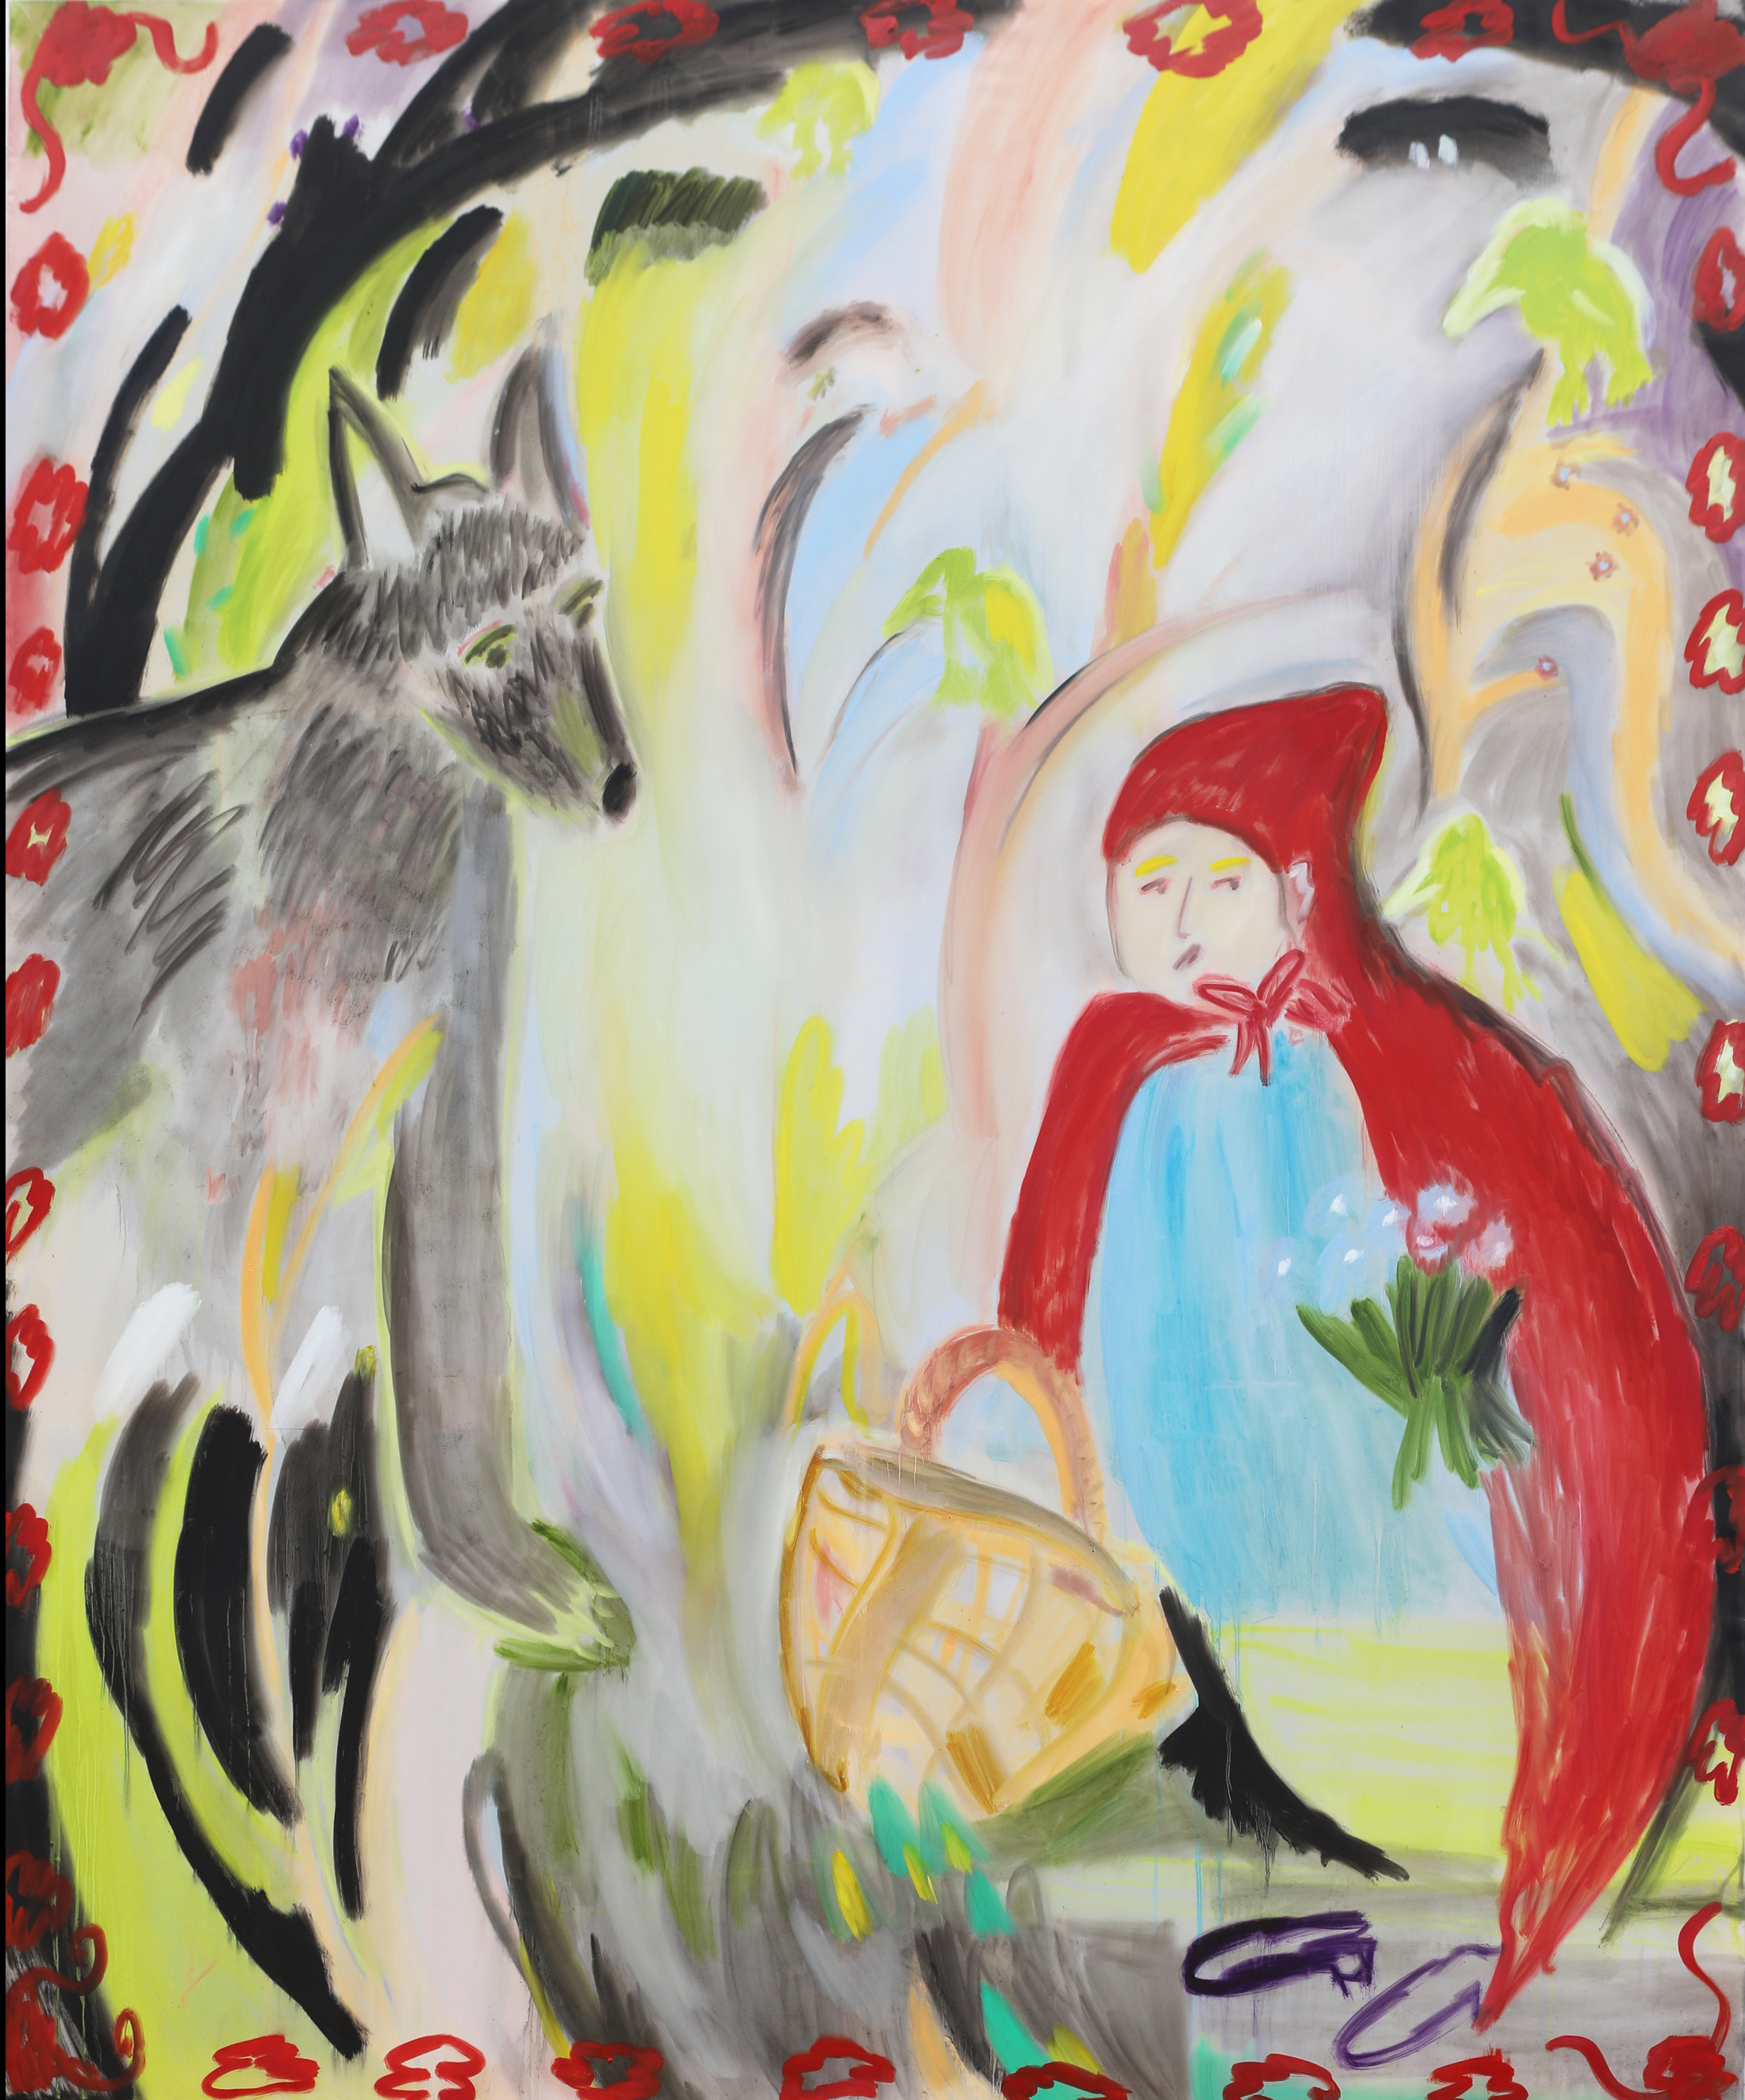 Riding Hood  170 x 140 cm  Oil, Silicone on Transparent Fabric